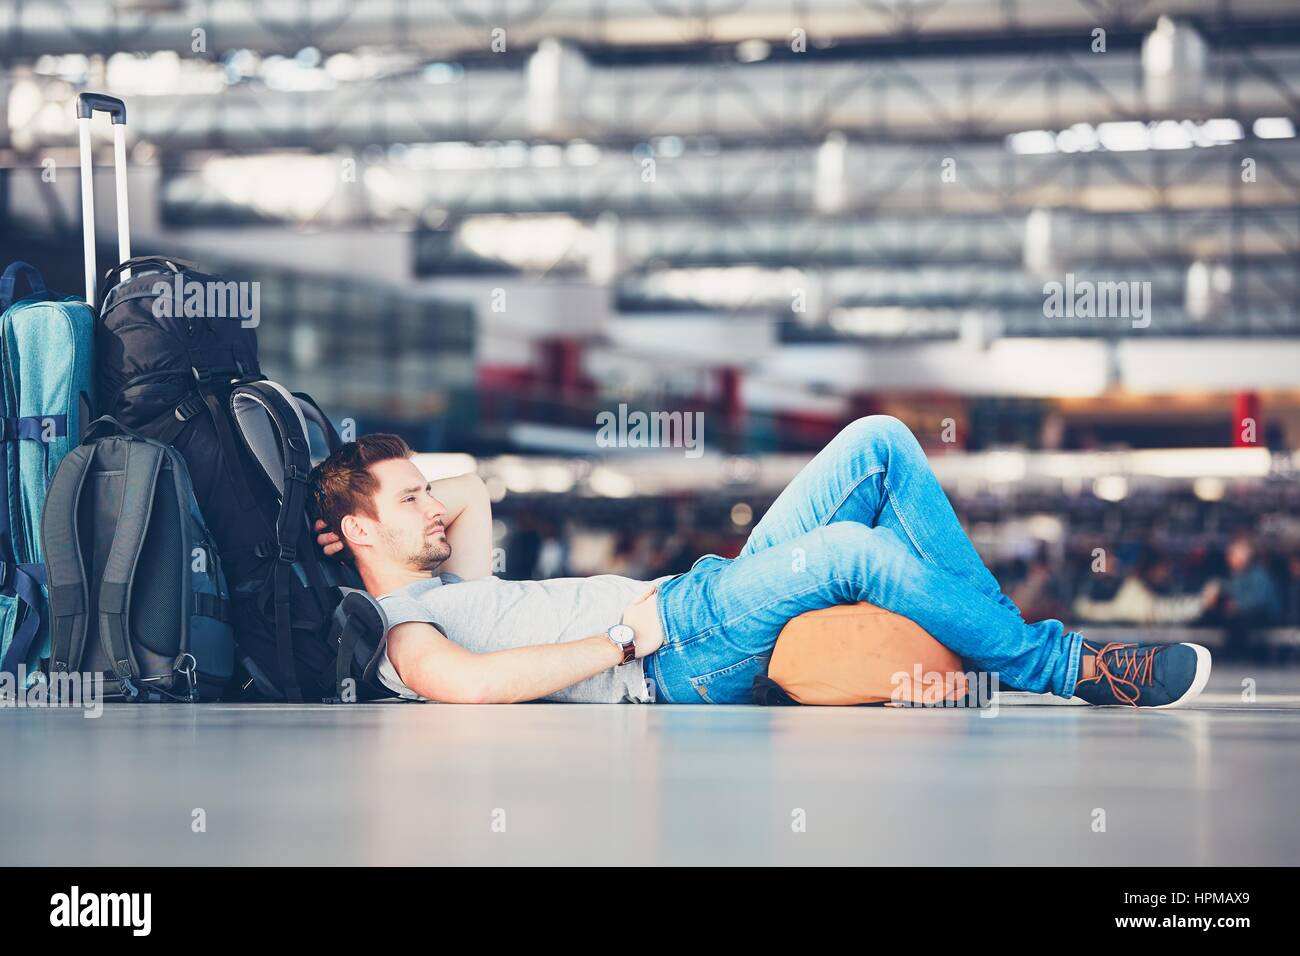 Traveler waiting at the airport departure area for his delay flight. - Stock Image